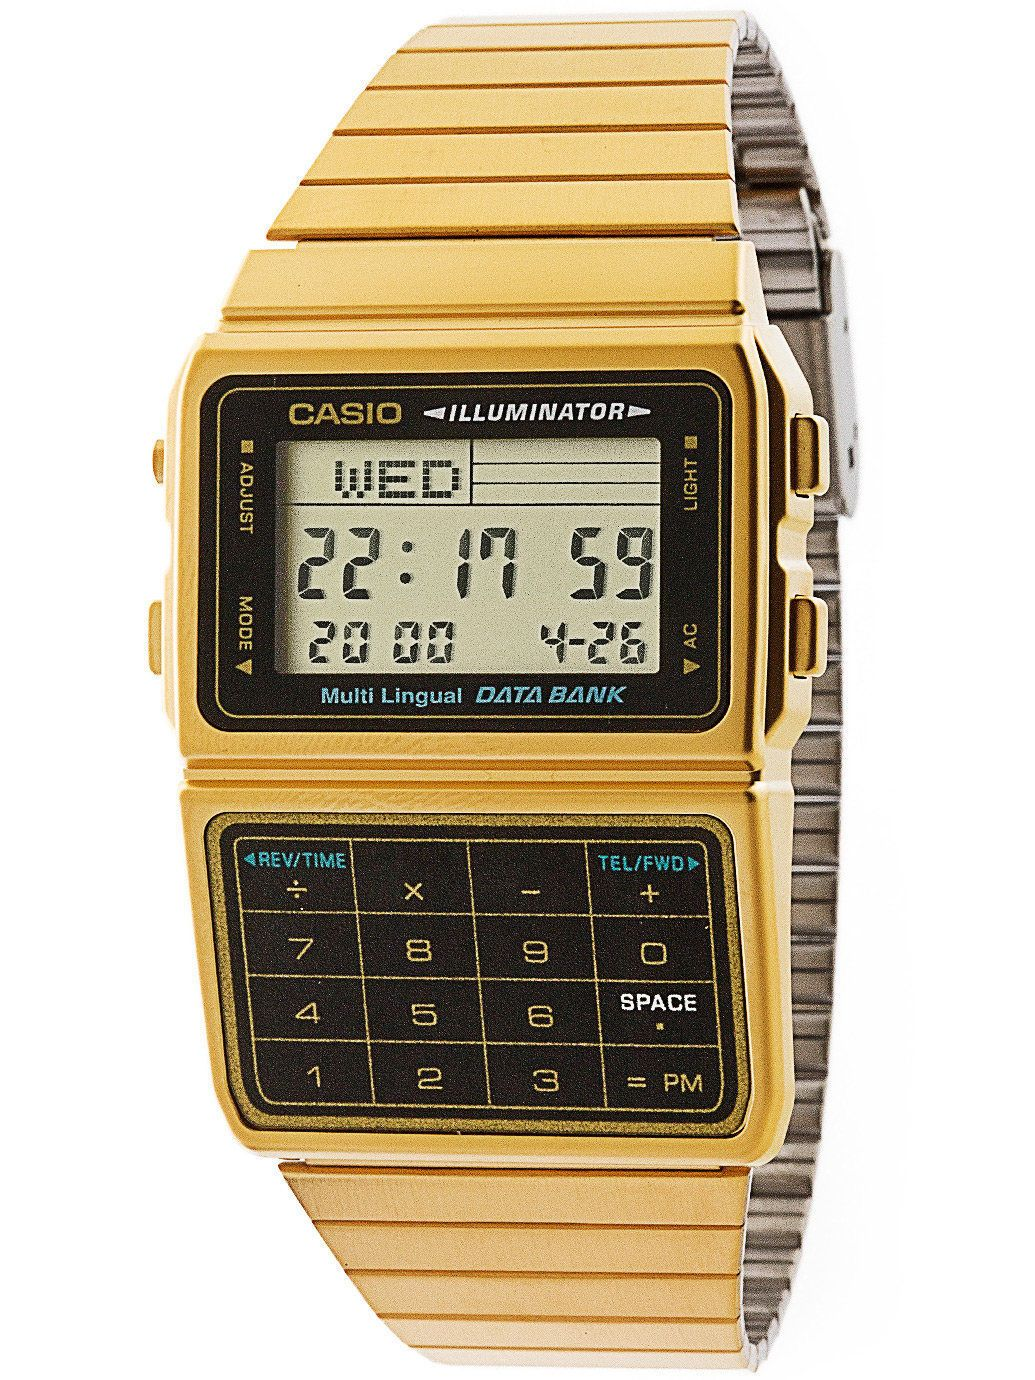 Casio Dbc611g 1df Gold Stainless Steel Databank Calculator Watch 5 Expedition E6665m Jam Tangan Pria Strap Leather Alarms New